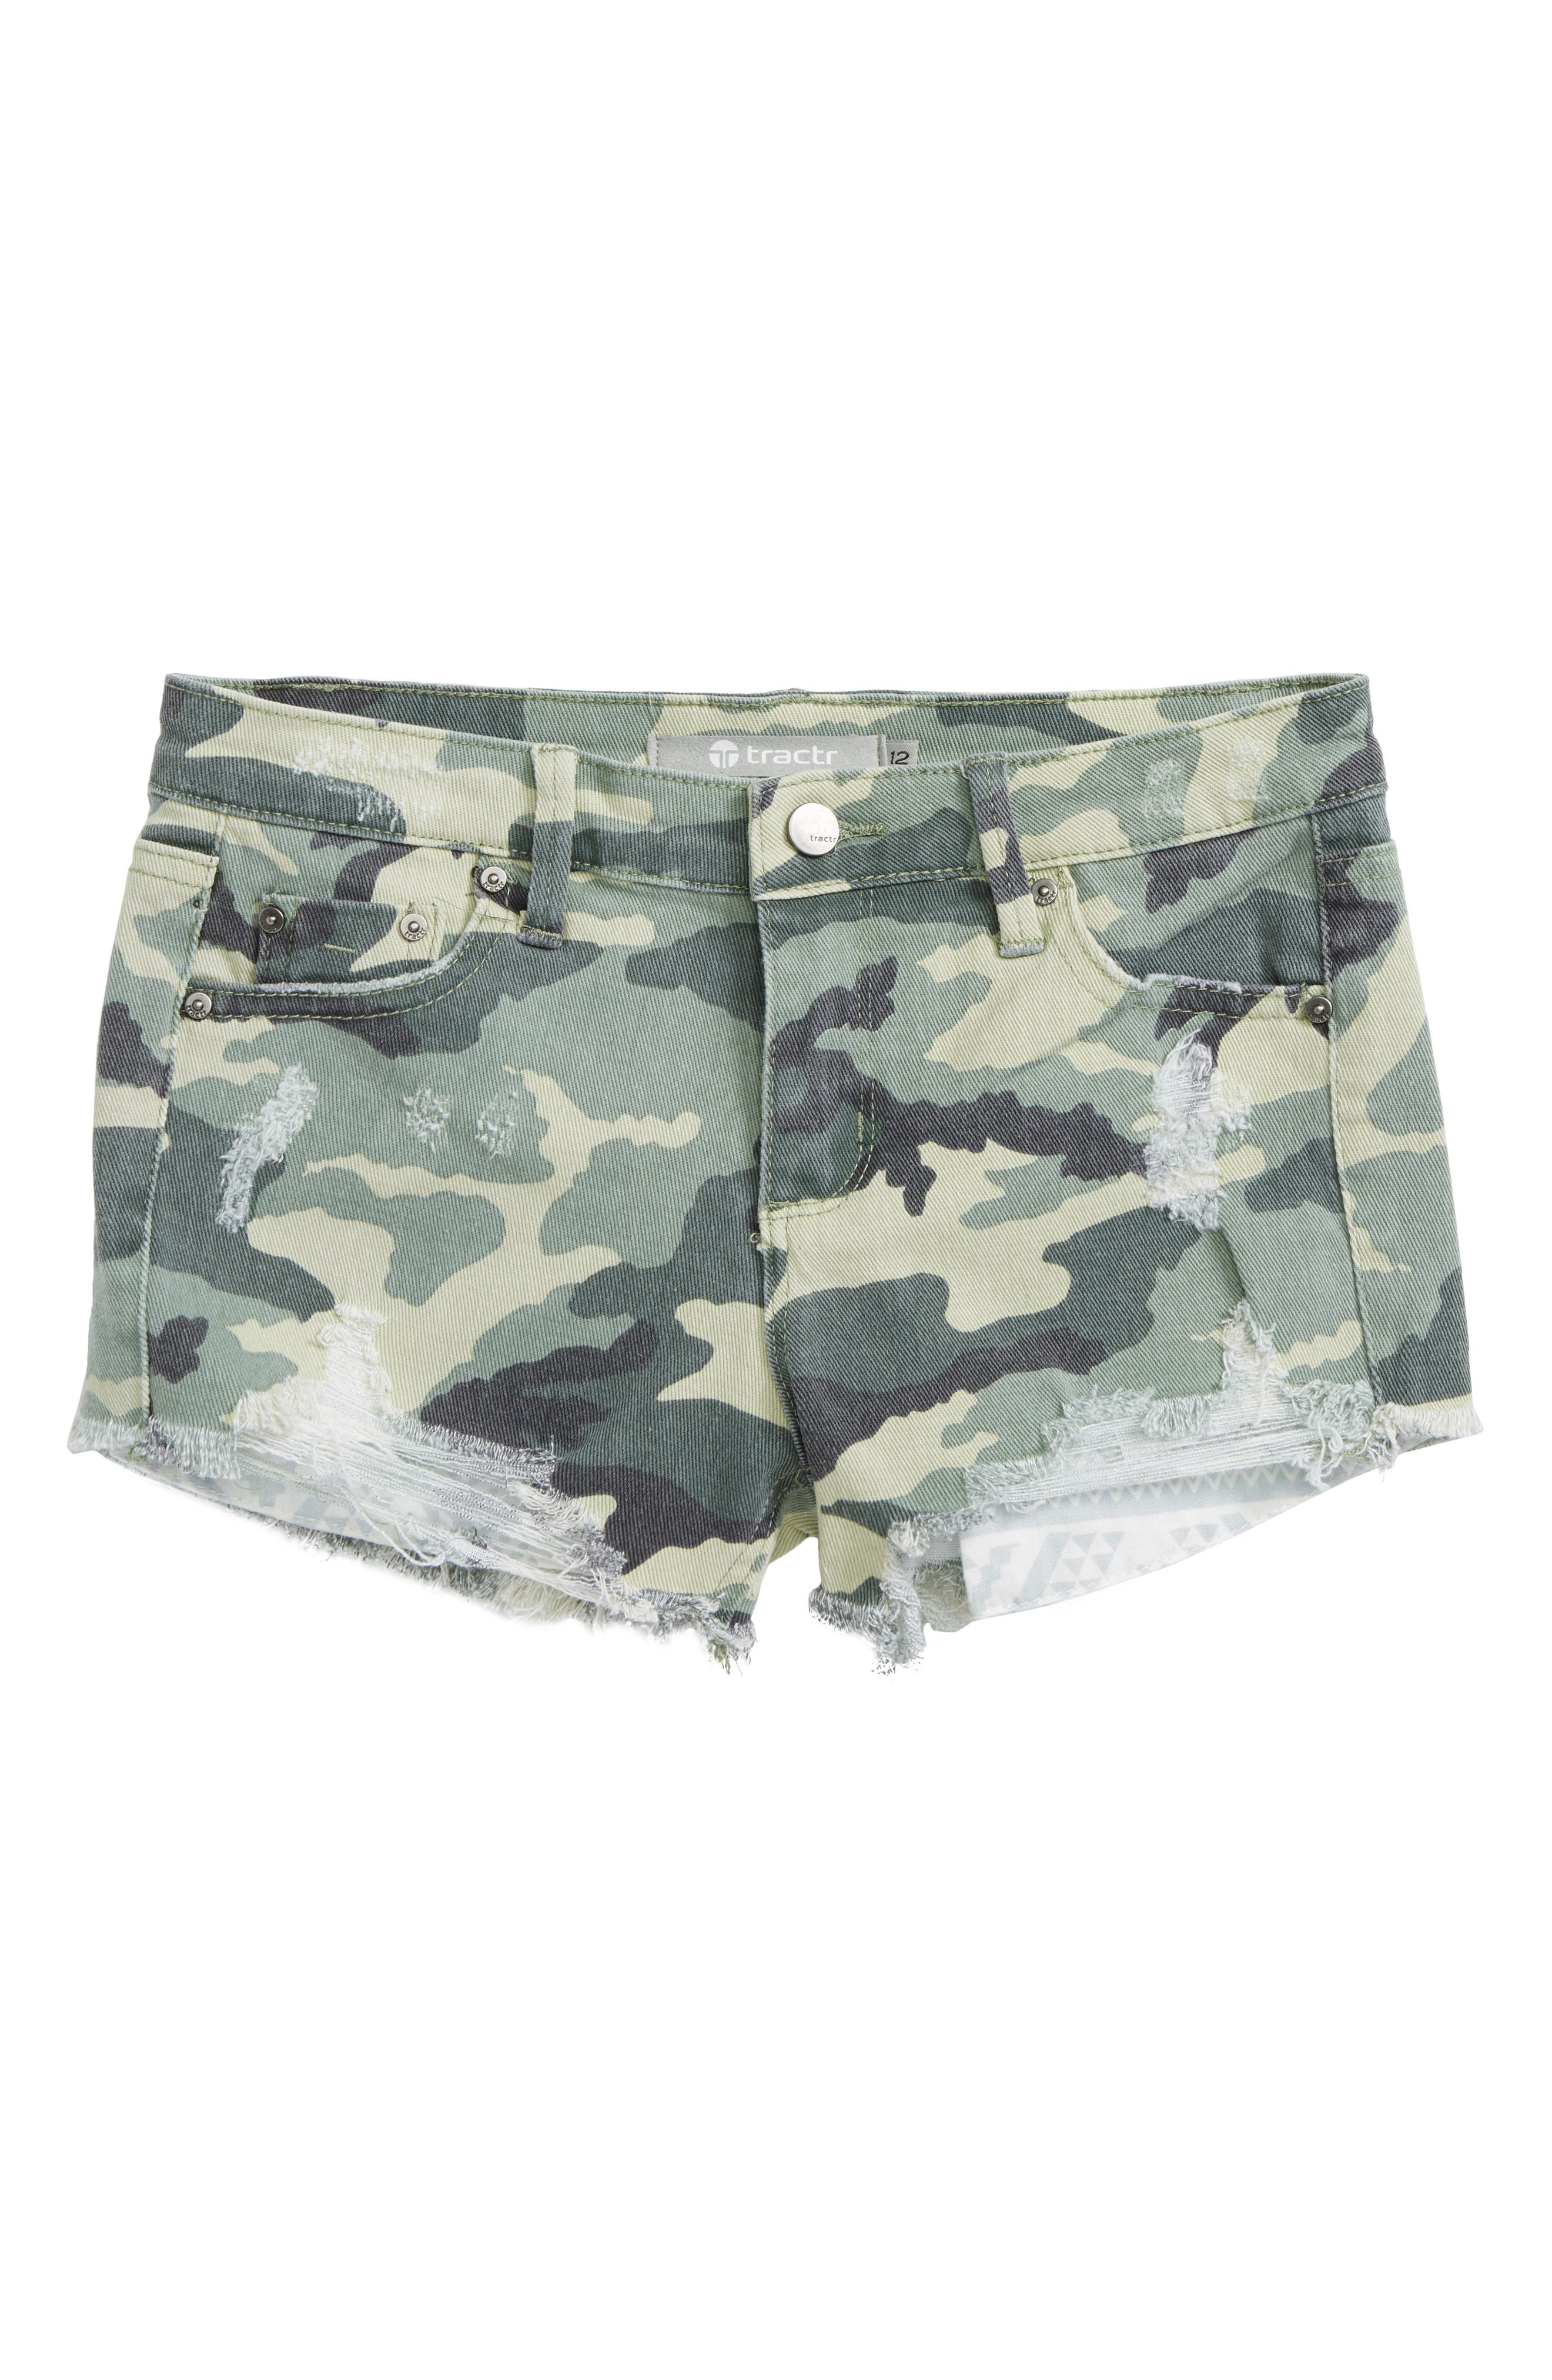 Camo Shorts,                             Main thumbnail 1, color,                             Green